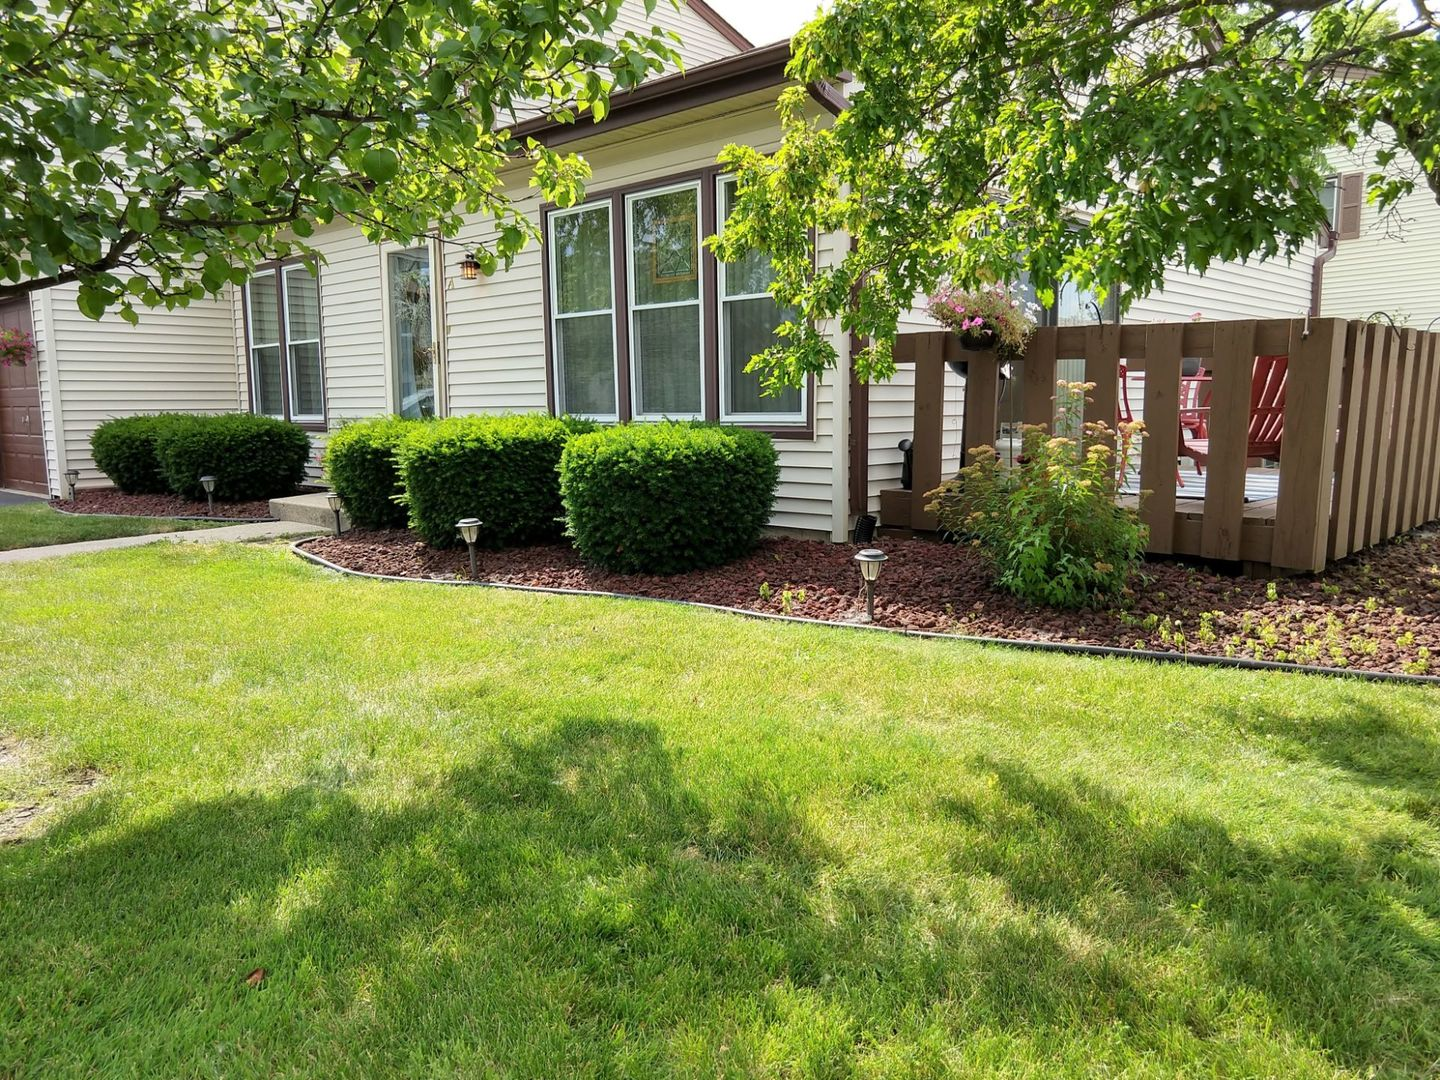 20146 South Deerfield A, FRANKFORT, Illinois, 60423